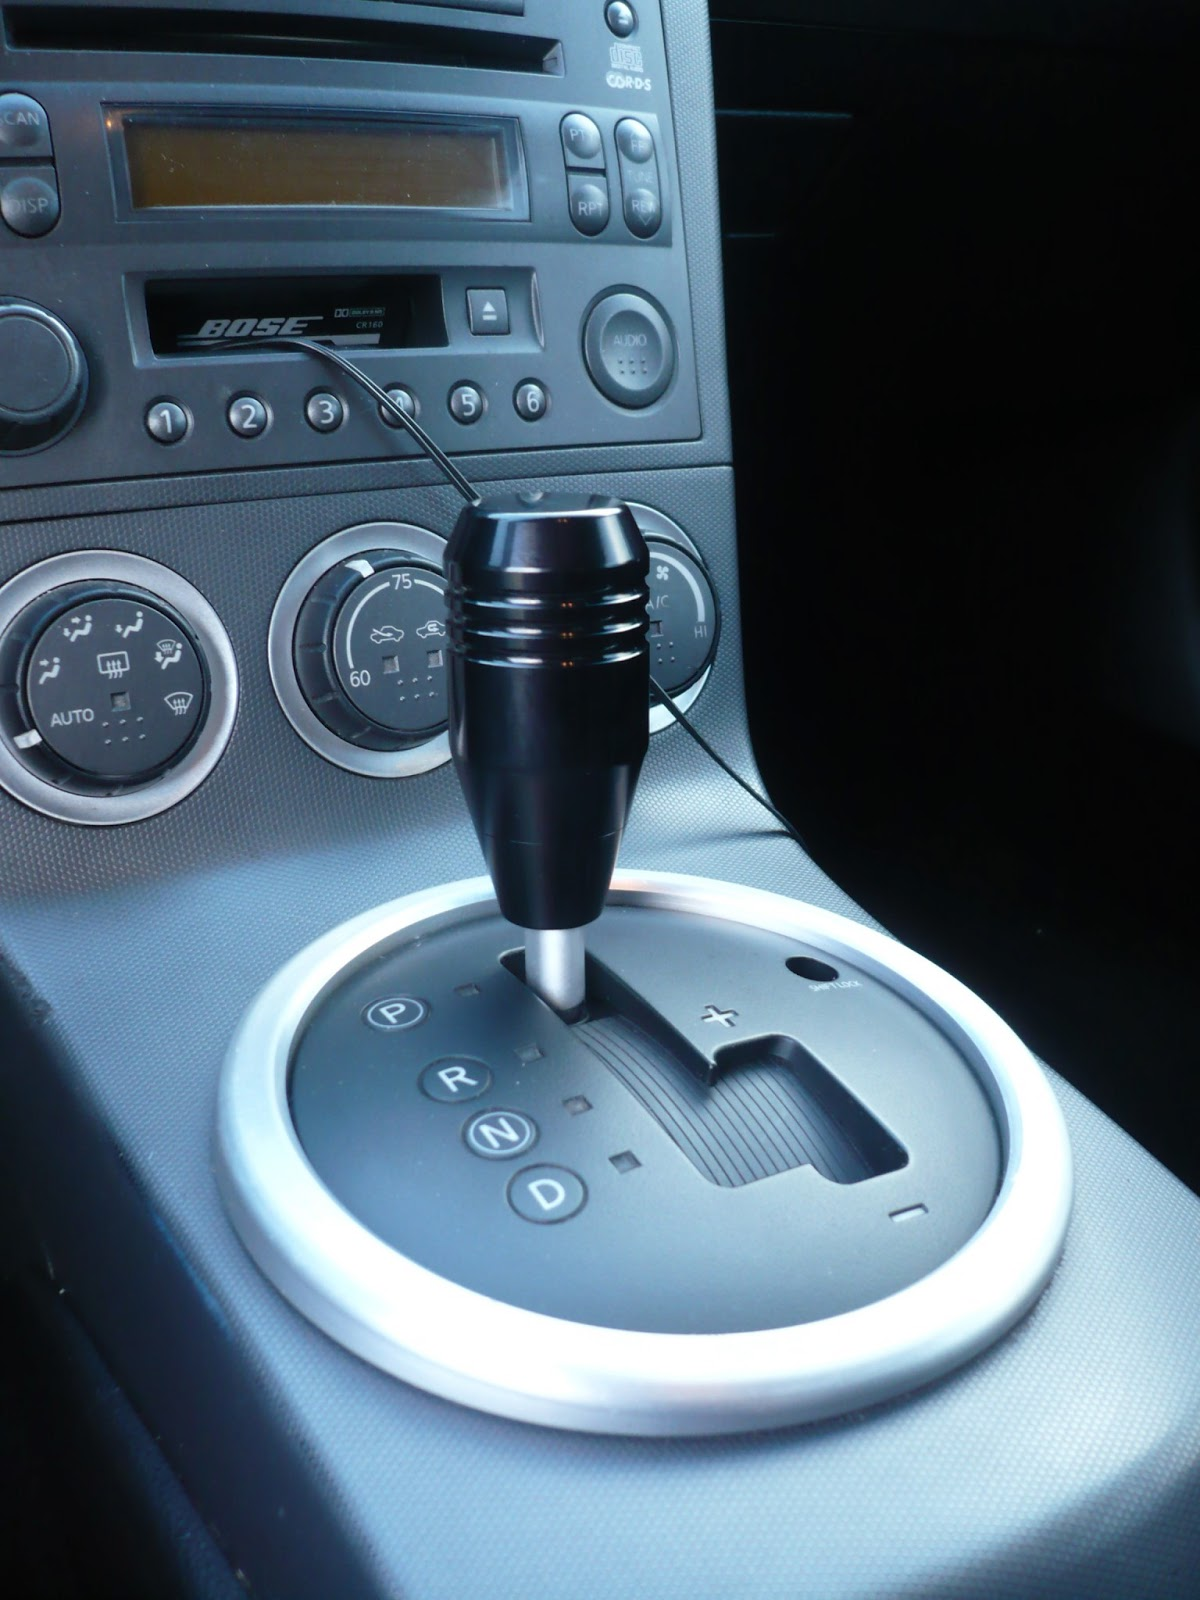 6 Foot Over 350z Auto Shift Knobs